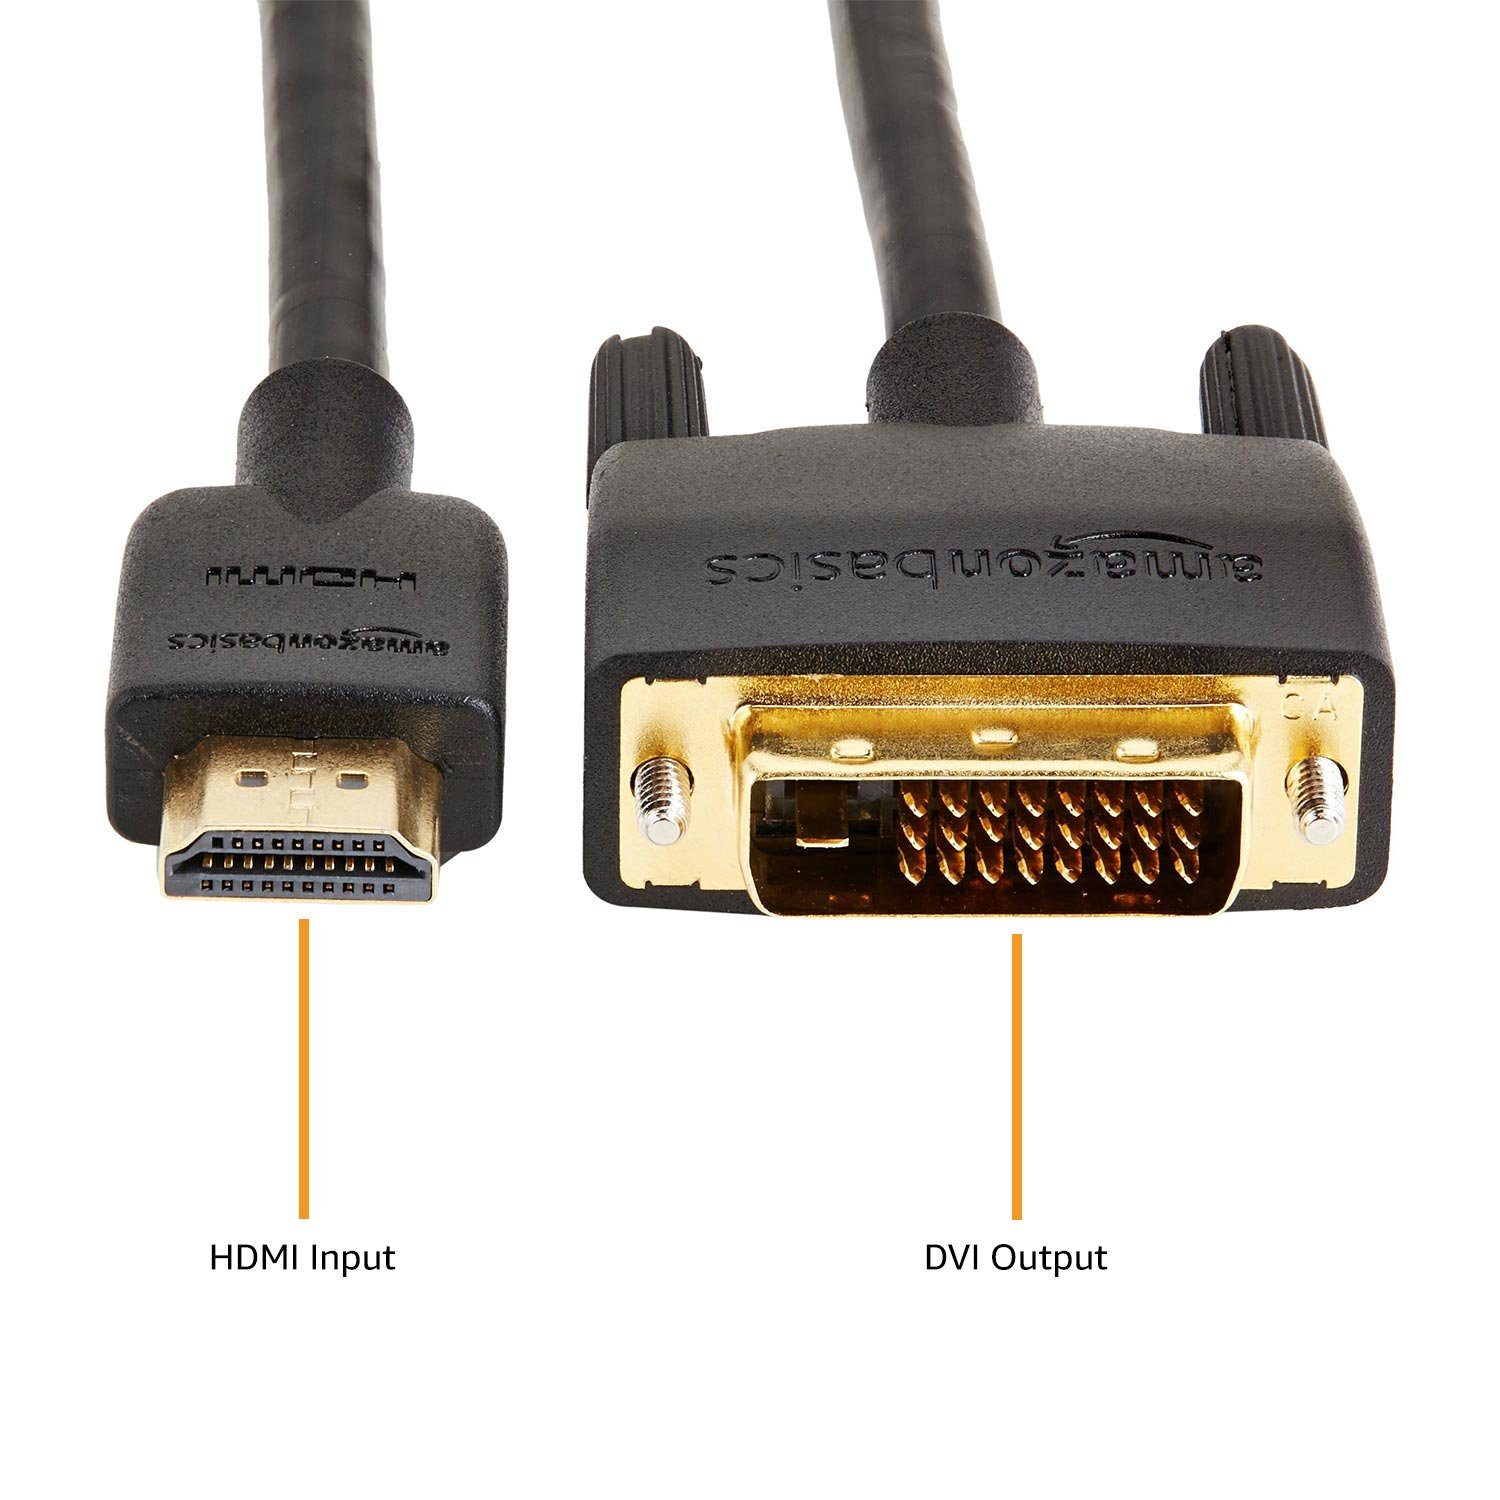 Amazon.com: AmazonBasics HL-007347 HDMI Input to DVI Output Adapter Cable -  6 Feet: Home Audio & Theater